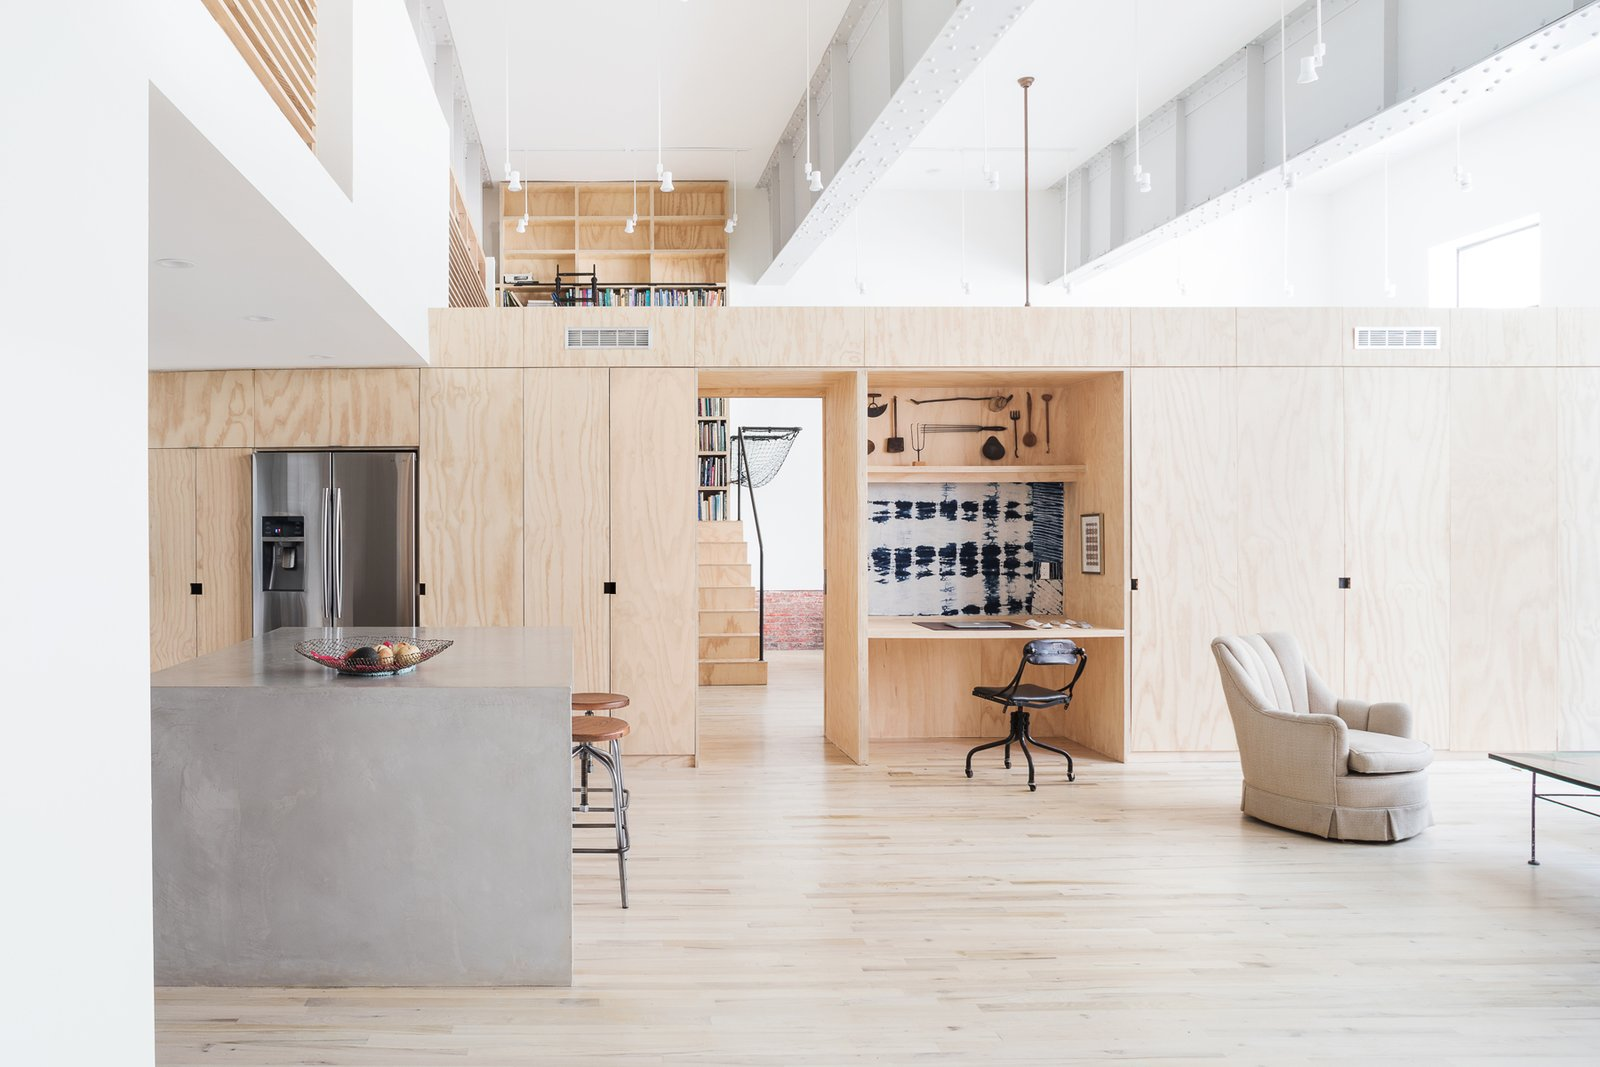 """Living Room, Chair, Coffee Tables, Recessed Lighting, Track Lighting, and Light Hardwood Floor Living space looking toward central organizing """"spine"""" built entirely of plywood  Wells Fargo Loft by Jeff Jordan Architects"""